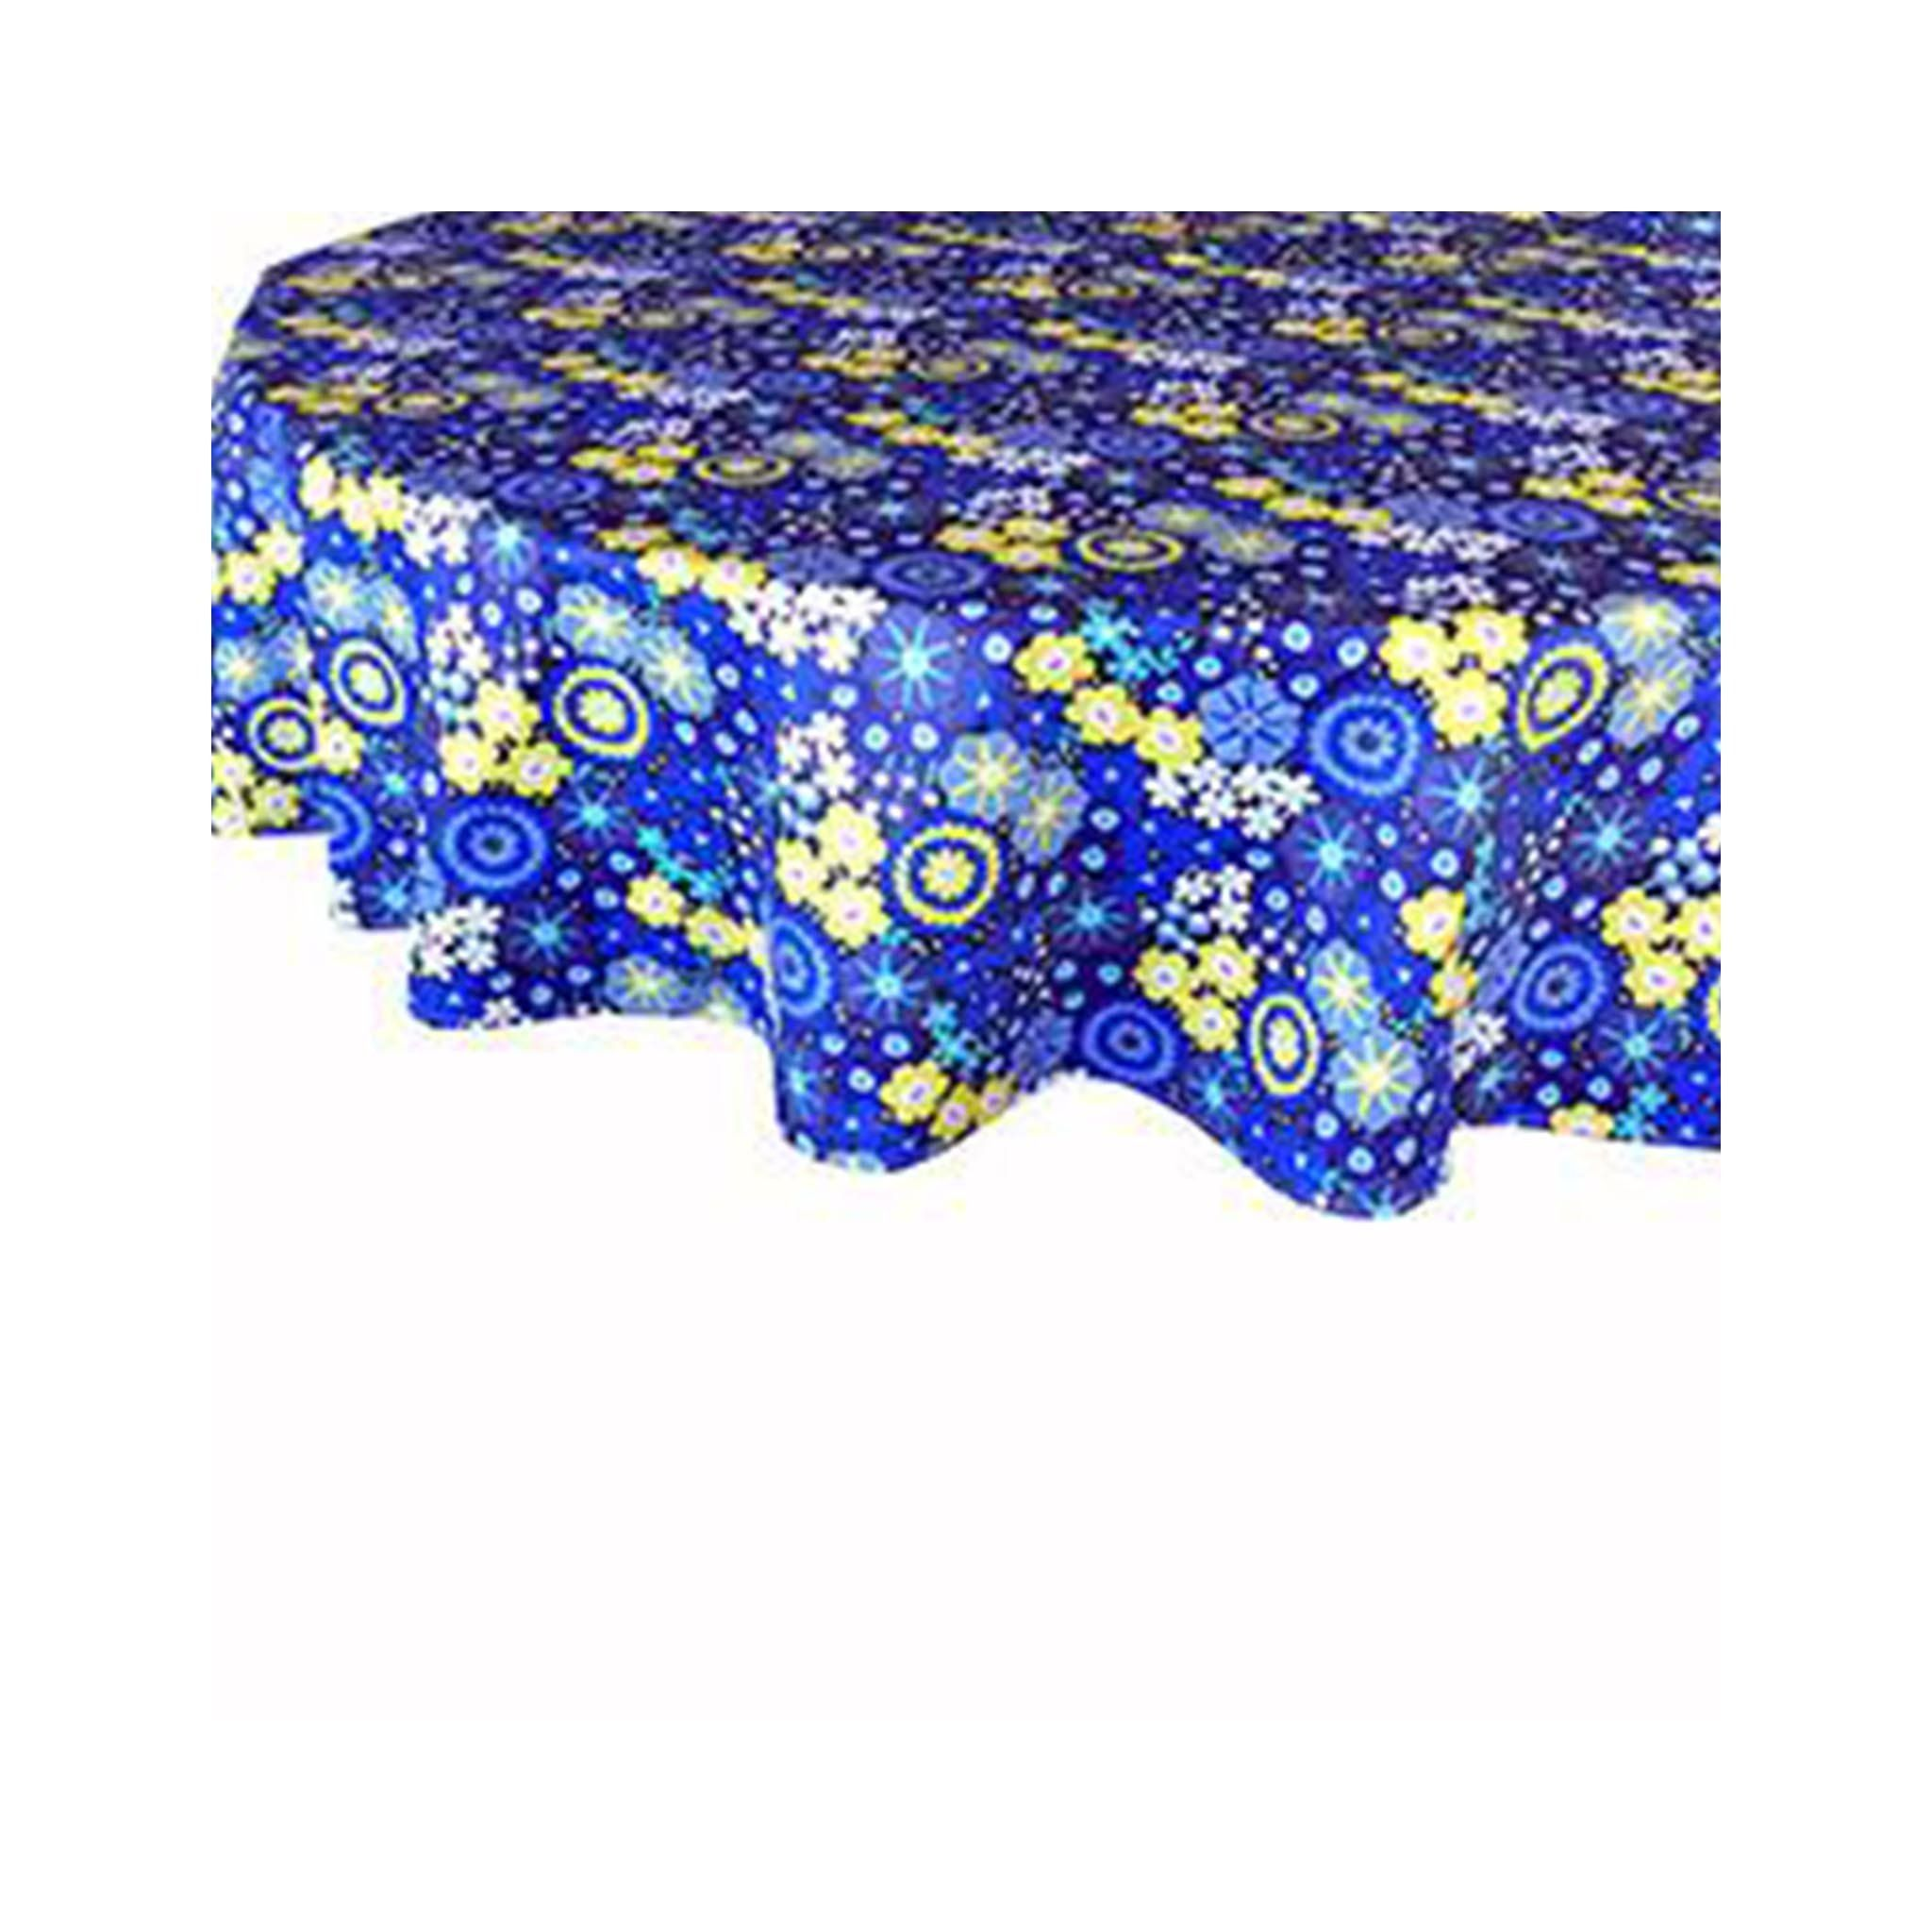 Laminated Cotton Tablecloth 70 Round With Images Cotton